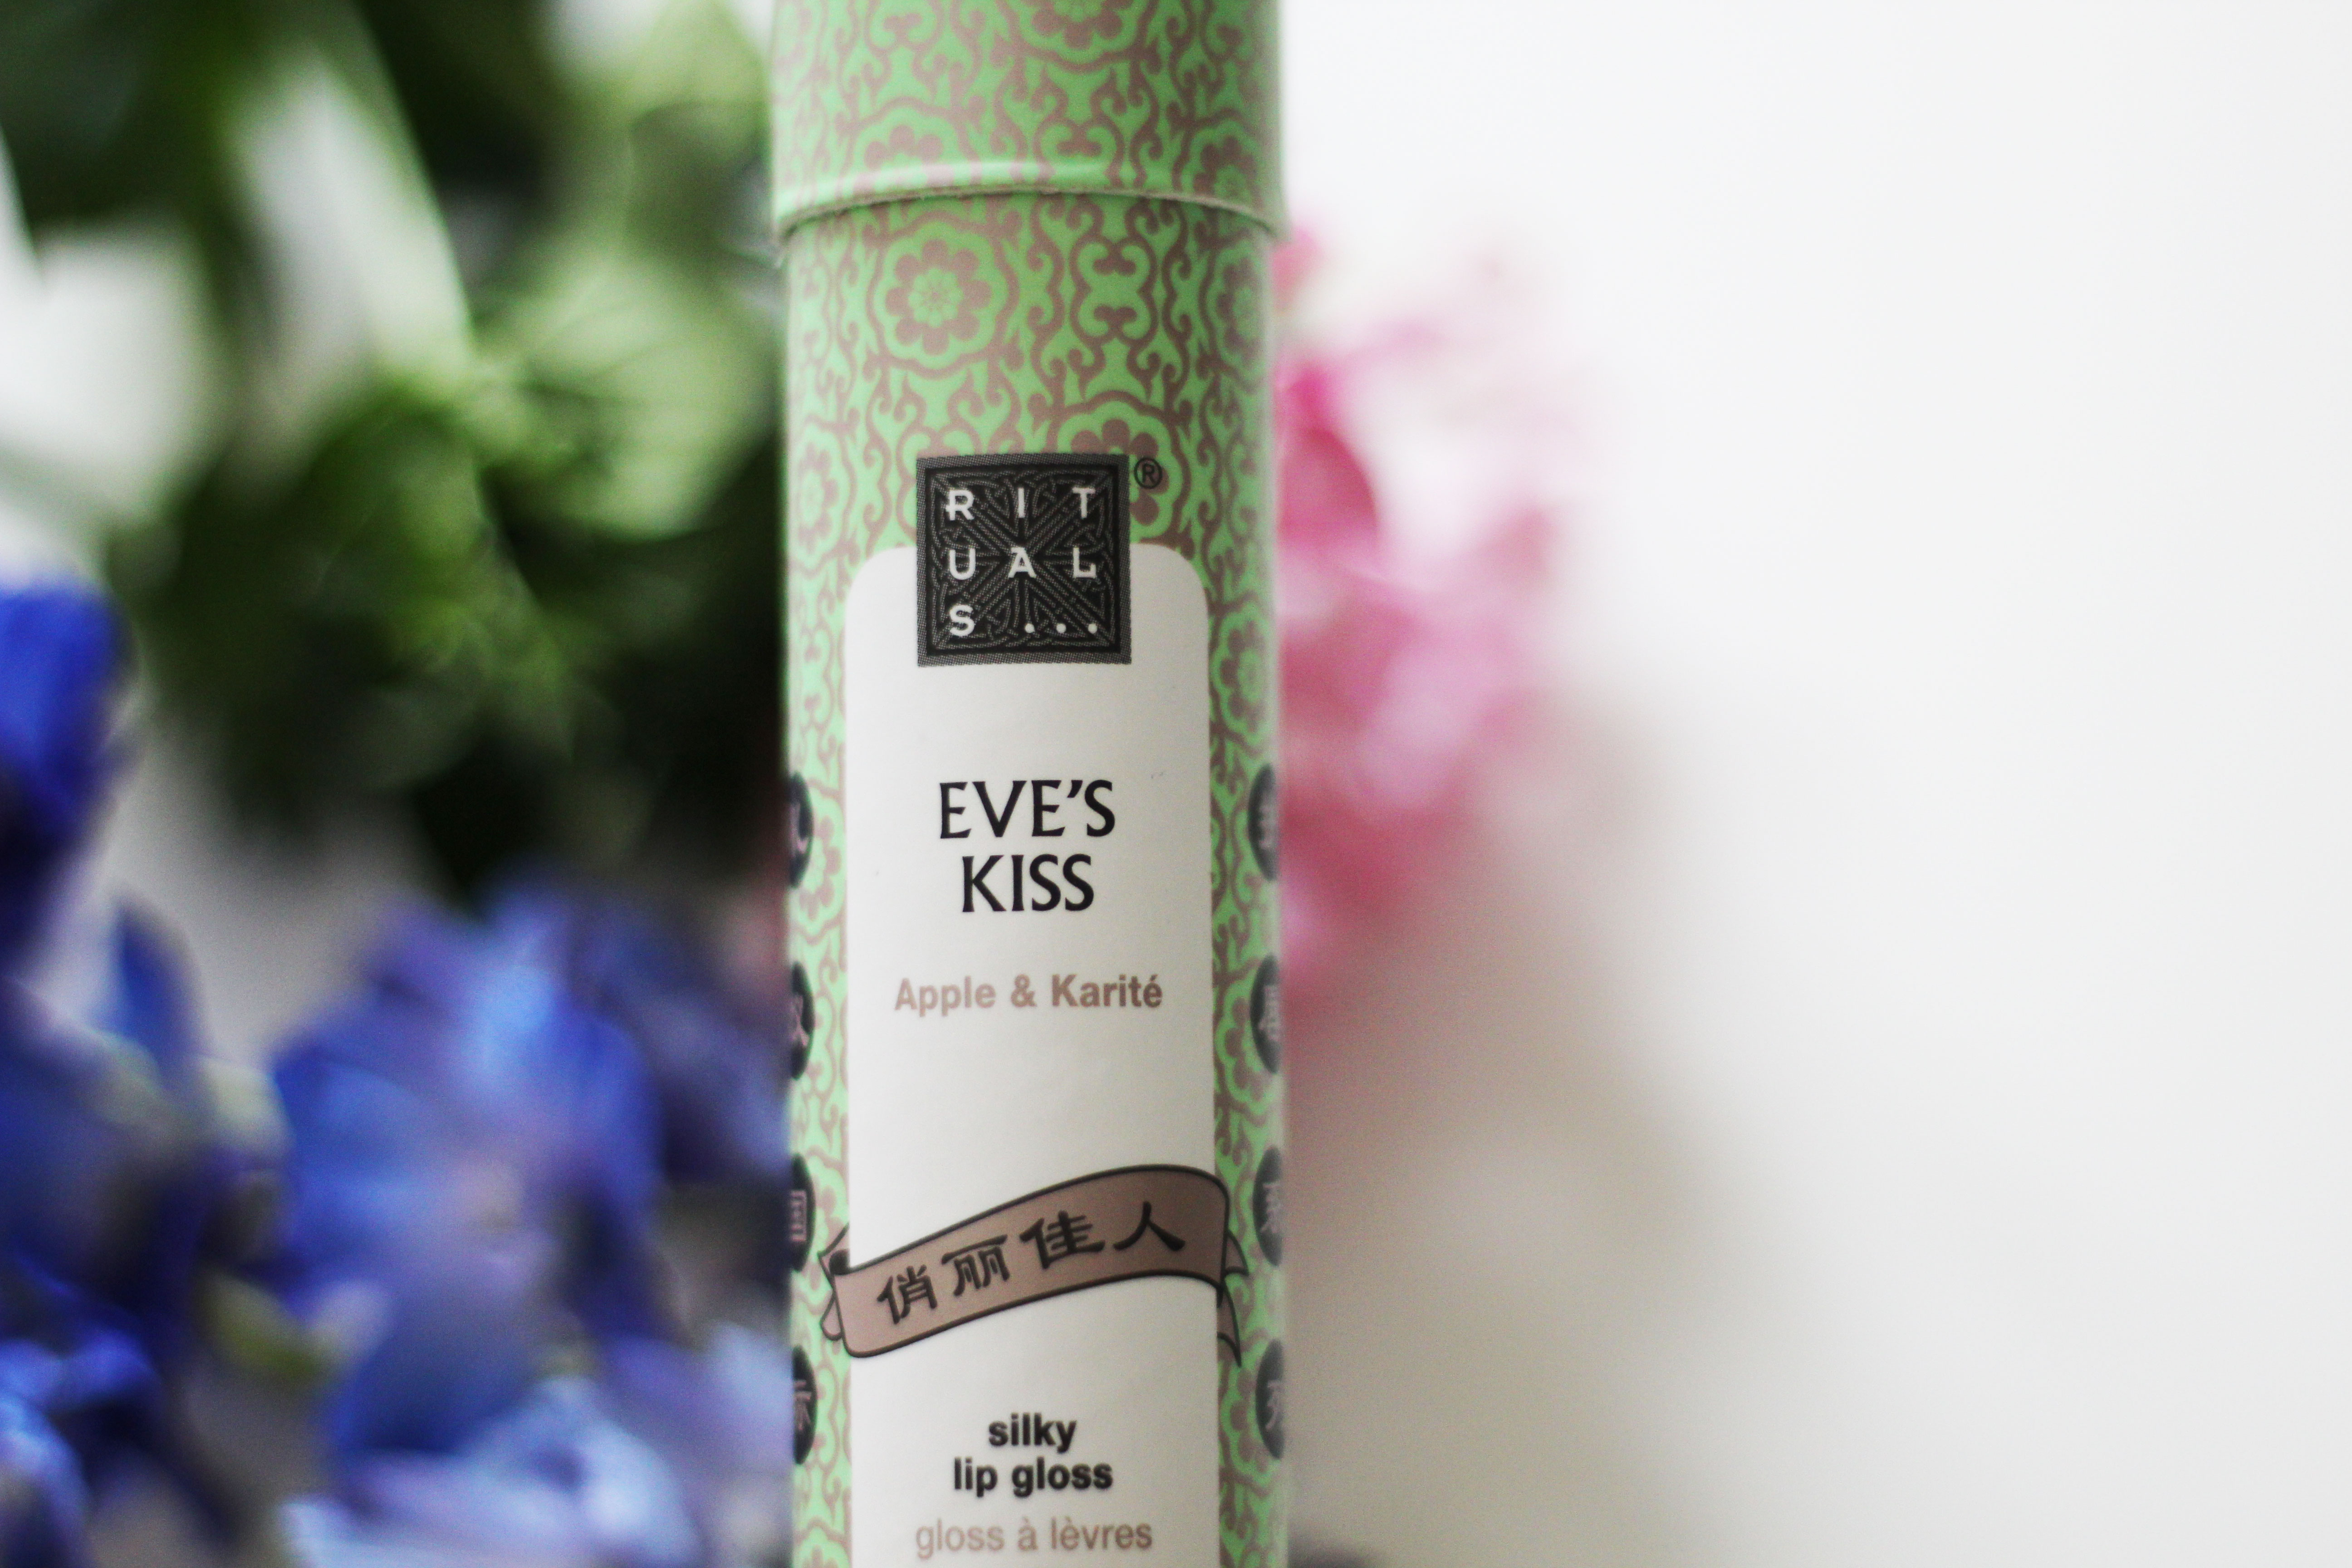 Review: Rituals Silky Lipgloss Eve's Kiss